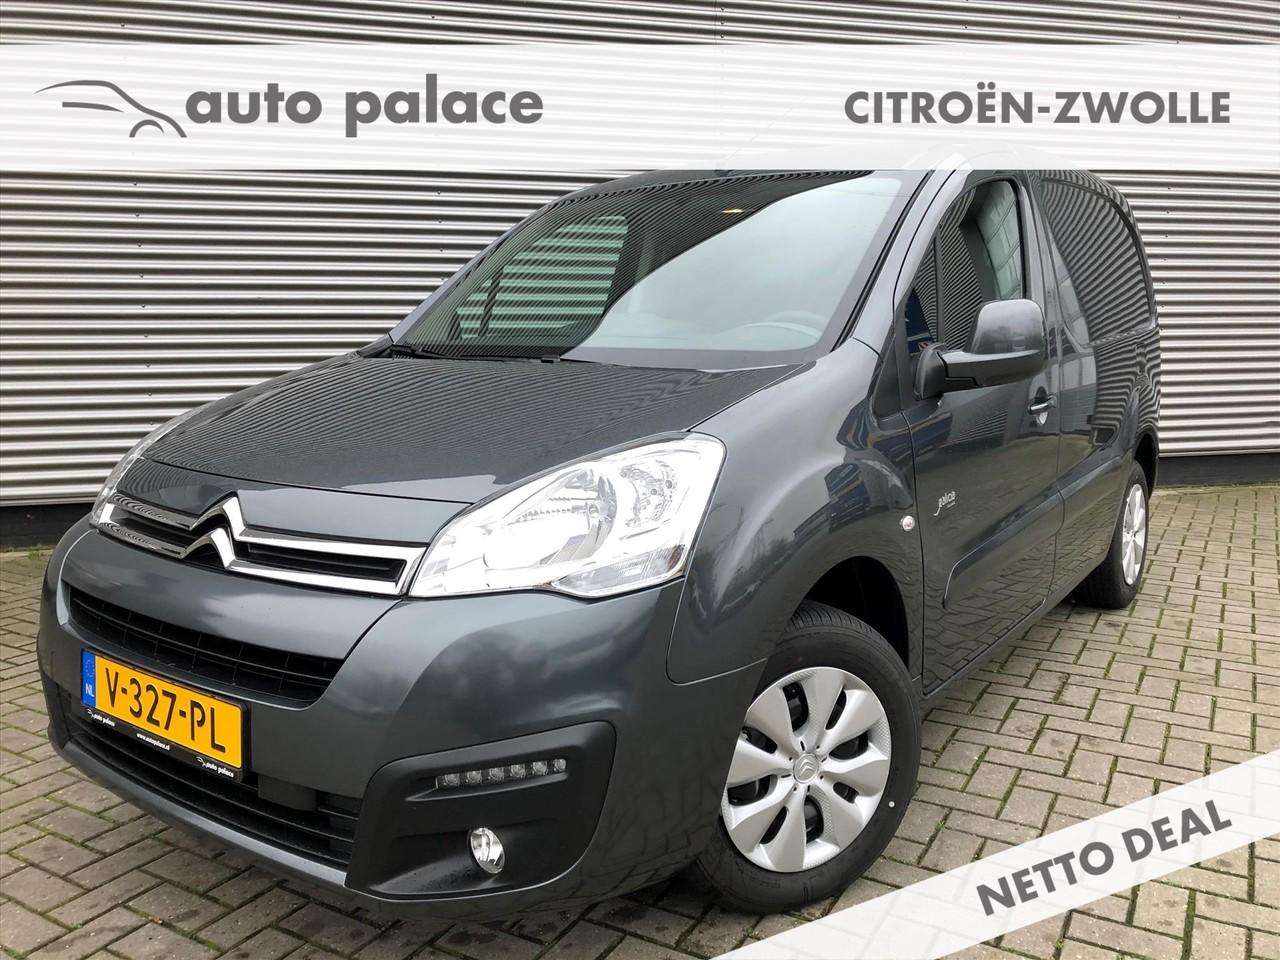 Citroën Berlingo Gb 1.6 bluehdi 100pk sens 2pl club economy